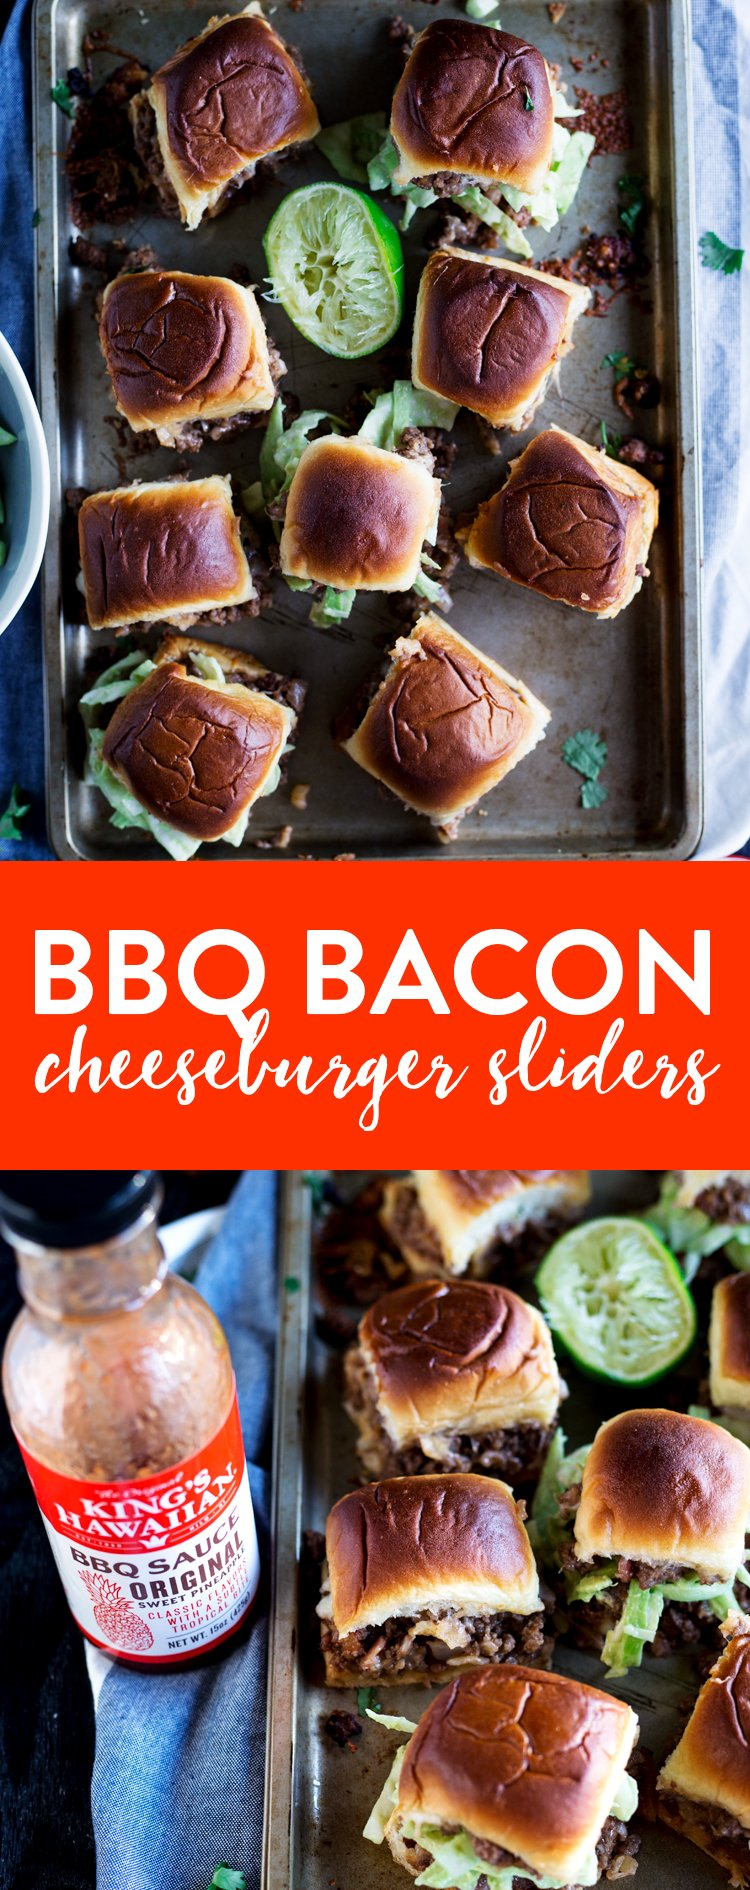 bbq-bacon-cheeseburger-sliders-with-creamy-avocado-slaw-9